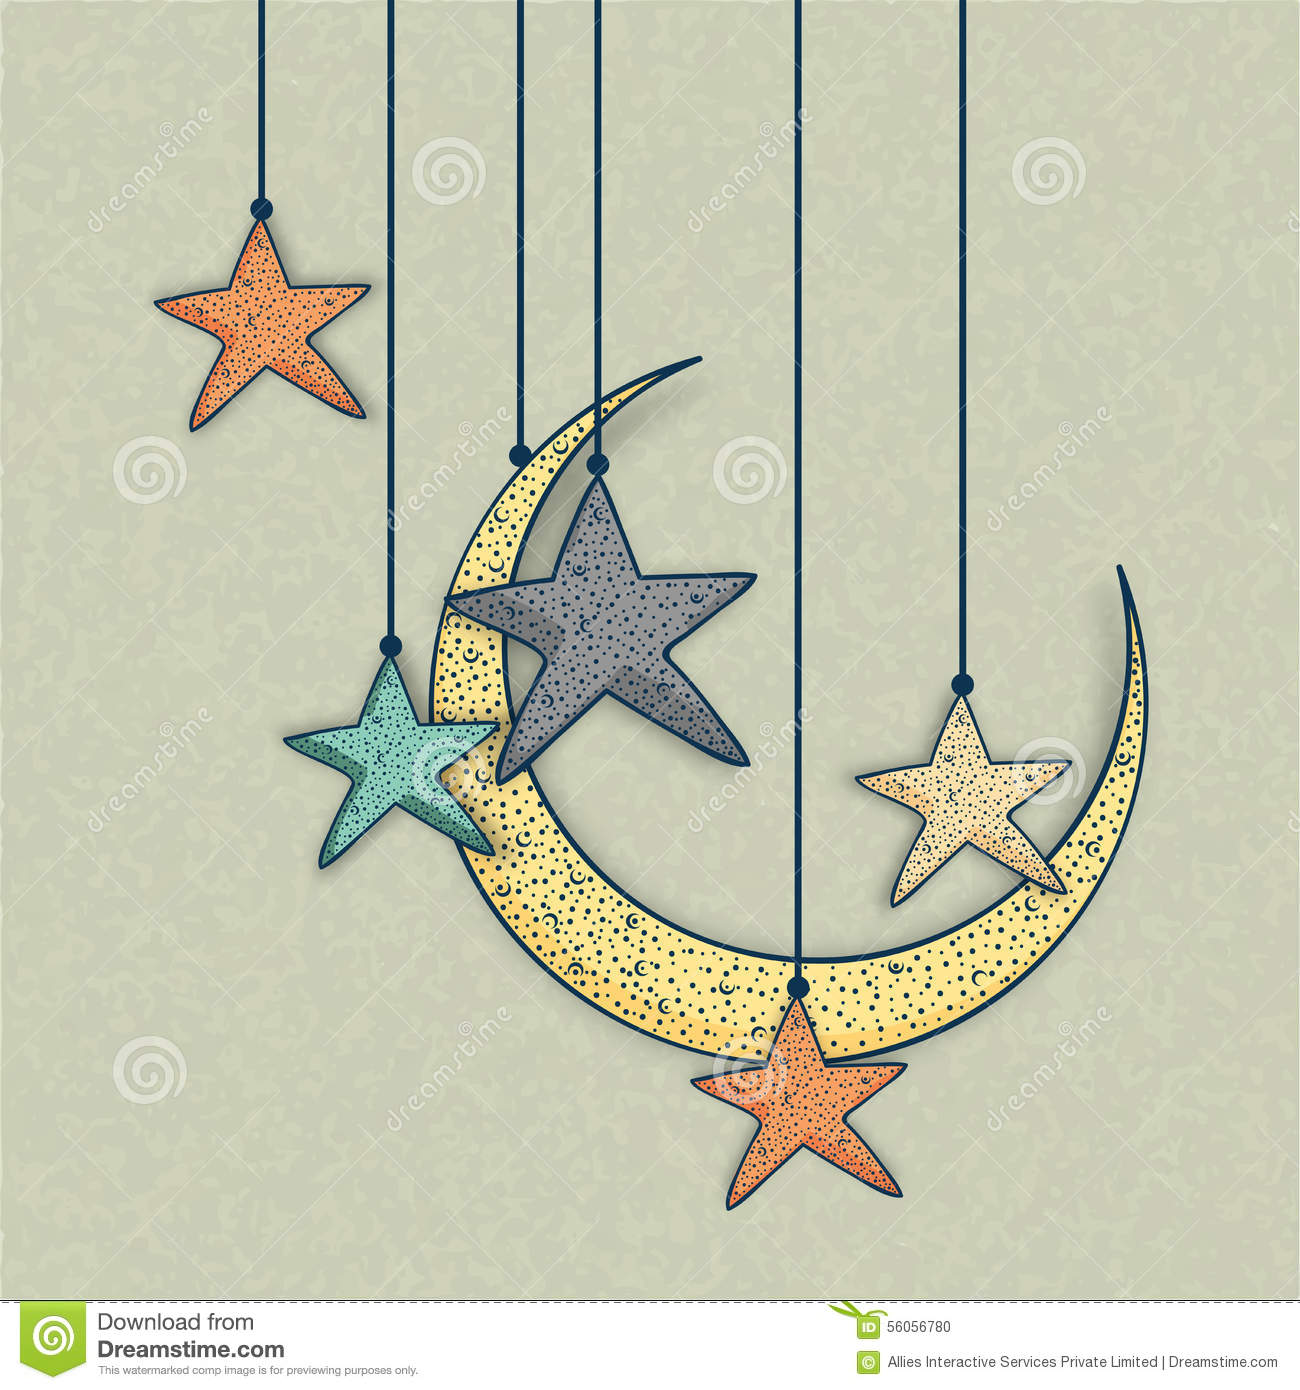 Greeting card with moon and star for eid celebration stock greeting card with moon and star for eid celebration kristyandbryce Images